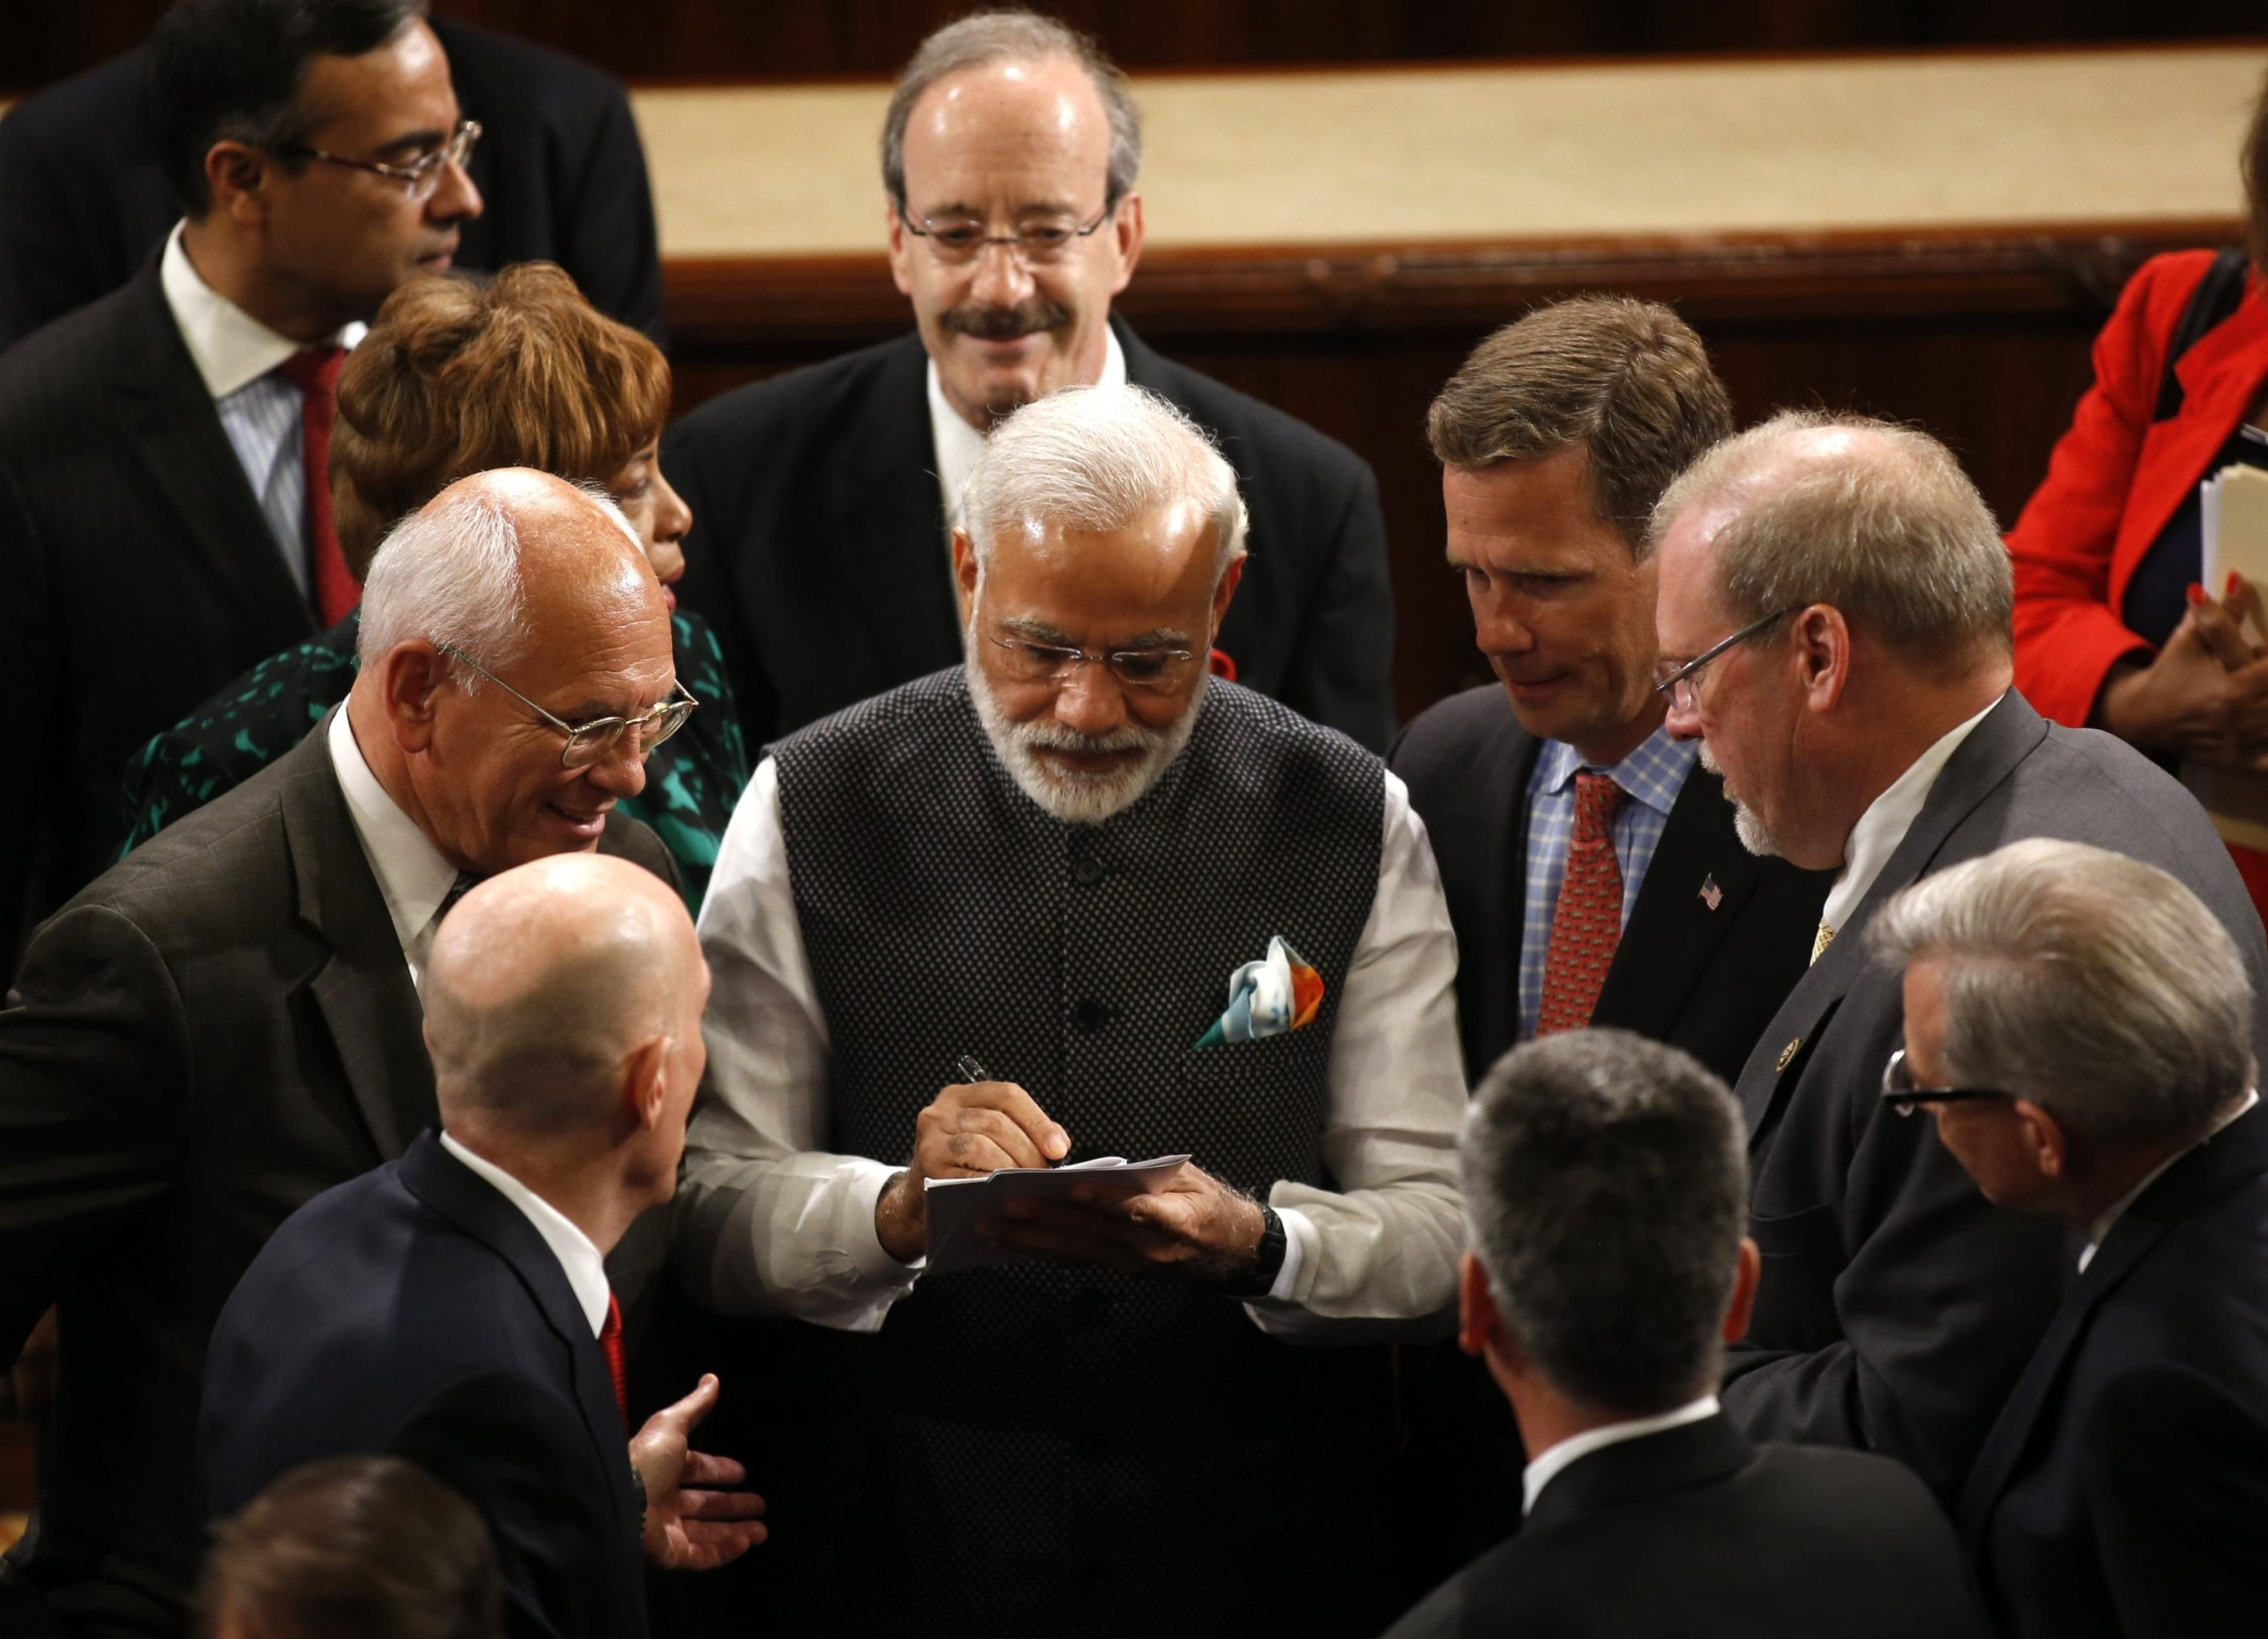 Modi signing the contract with the different ministers of the world - why hard work is important